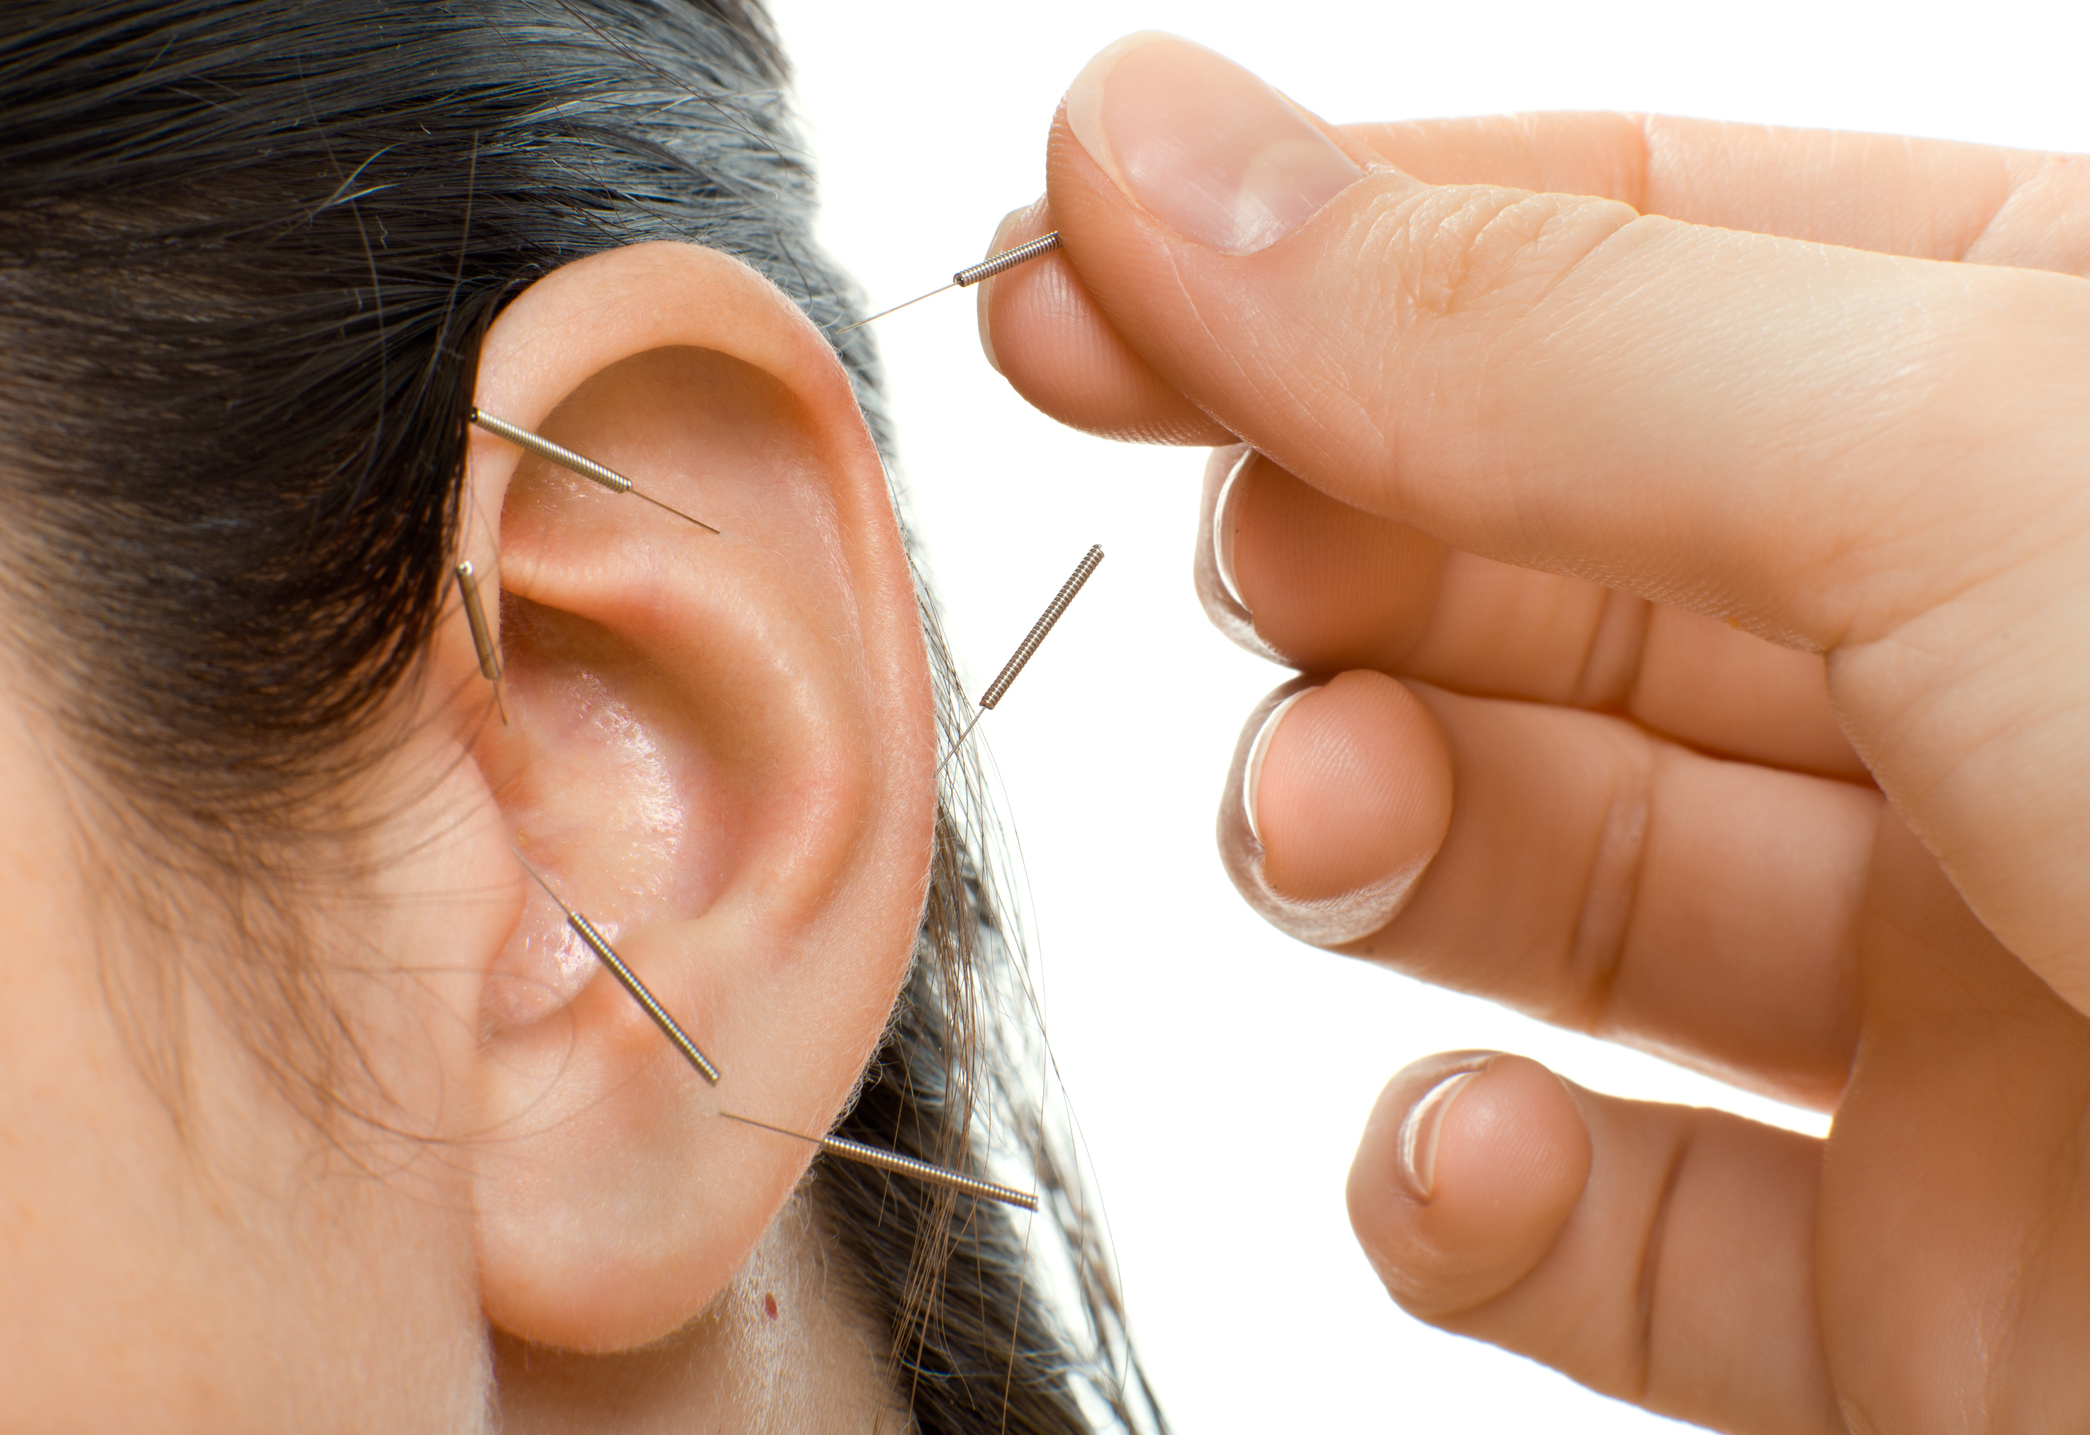 Auricular Therapy - According to the principles of auricular therapy each area of the ear corresponds to a different anatomical portion of the body.  Auricular therapy works by stimulating the central nervous system through the cranial/spinal nerves on the auricle of the ear. These points are stimulated by using tiny acupuncture needles or using tiny magnets or seeds held on by adhesive.  Auricular therapy stimulates internal organs, improves general circulation, aids in the flow of the lymphatic system, induces deep relaxation, stimulates the brain, and improves the immune system.  Almost all health conditions can be affected to some degree by stimulating the ear points.  The most common uses are the control of chronic pain, detoxification from addictions such as smoking, relief from nausea and high blood pressure.